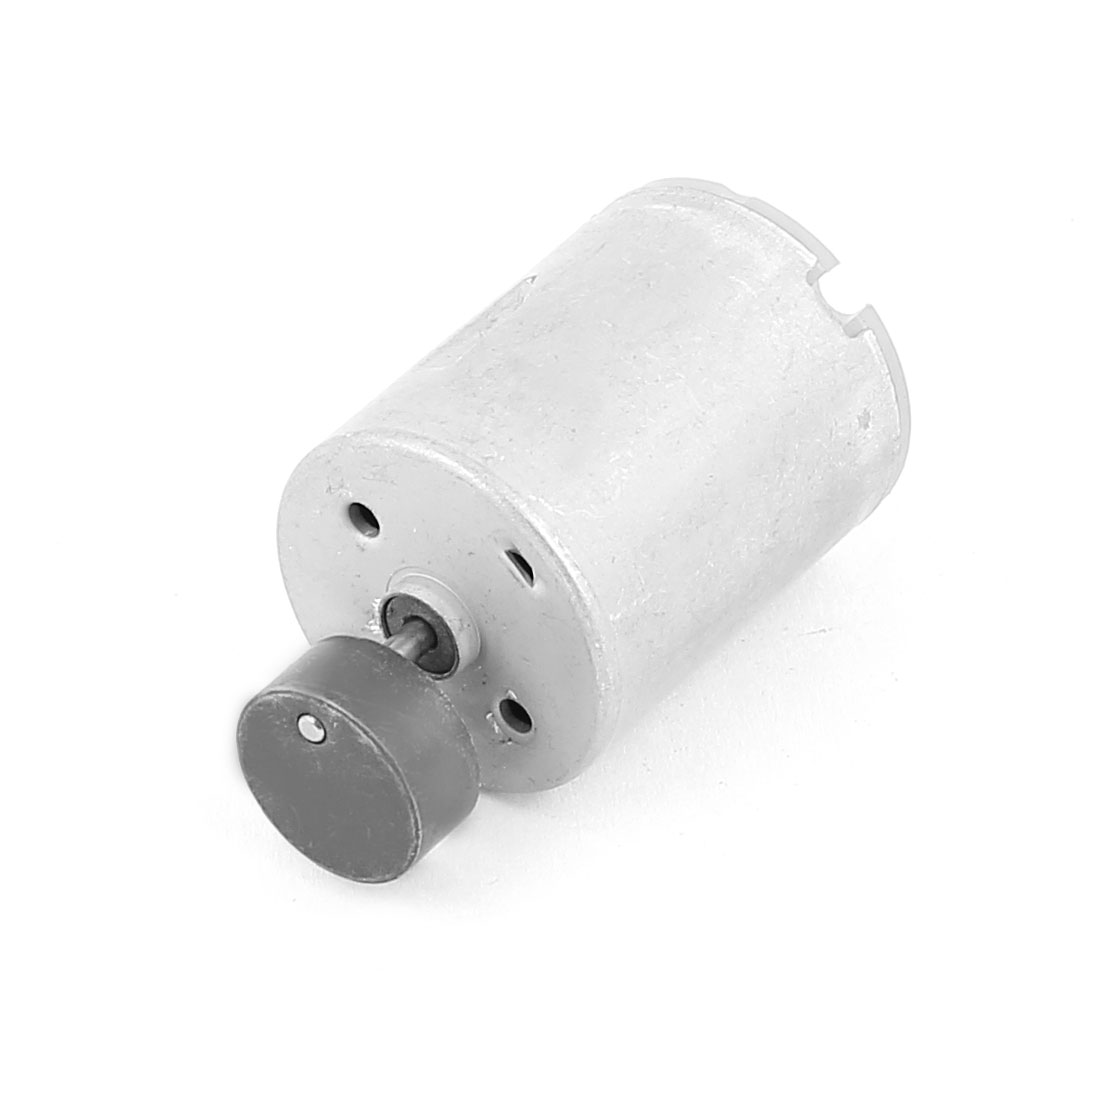 DC 12V 3800RPM Rotary Speed 24mm Dia Electric Vibration Motor